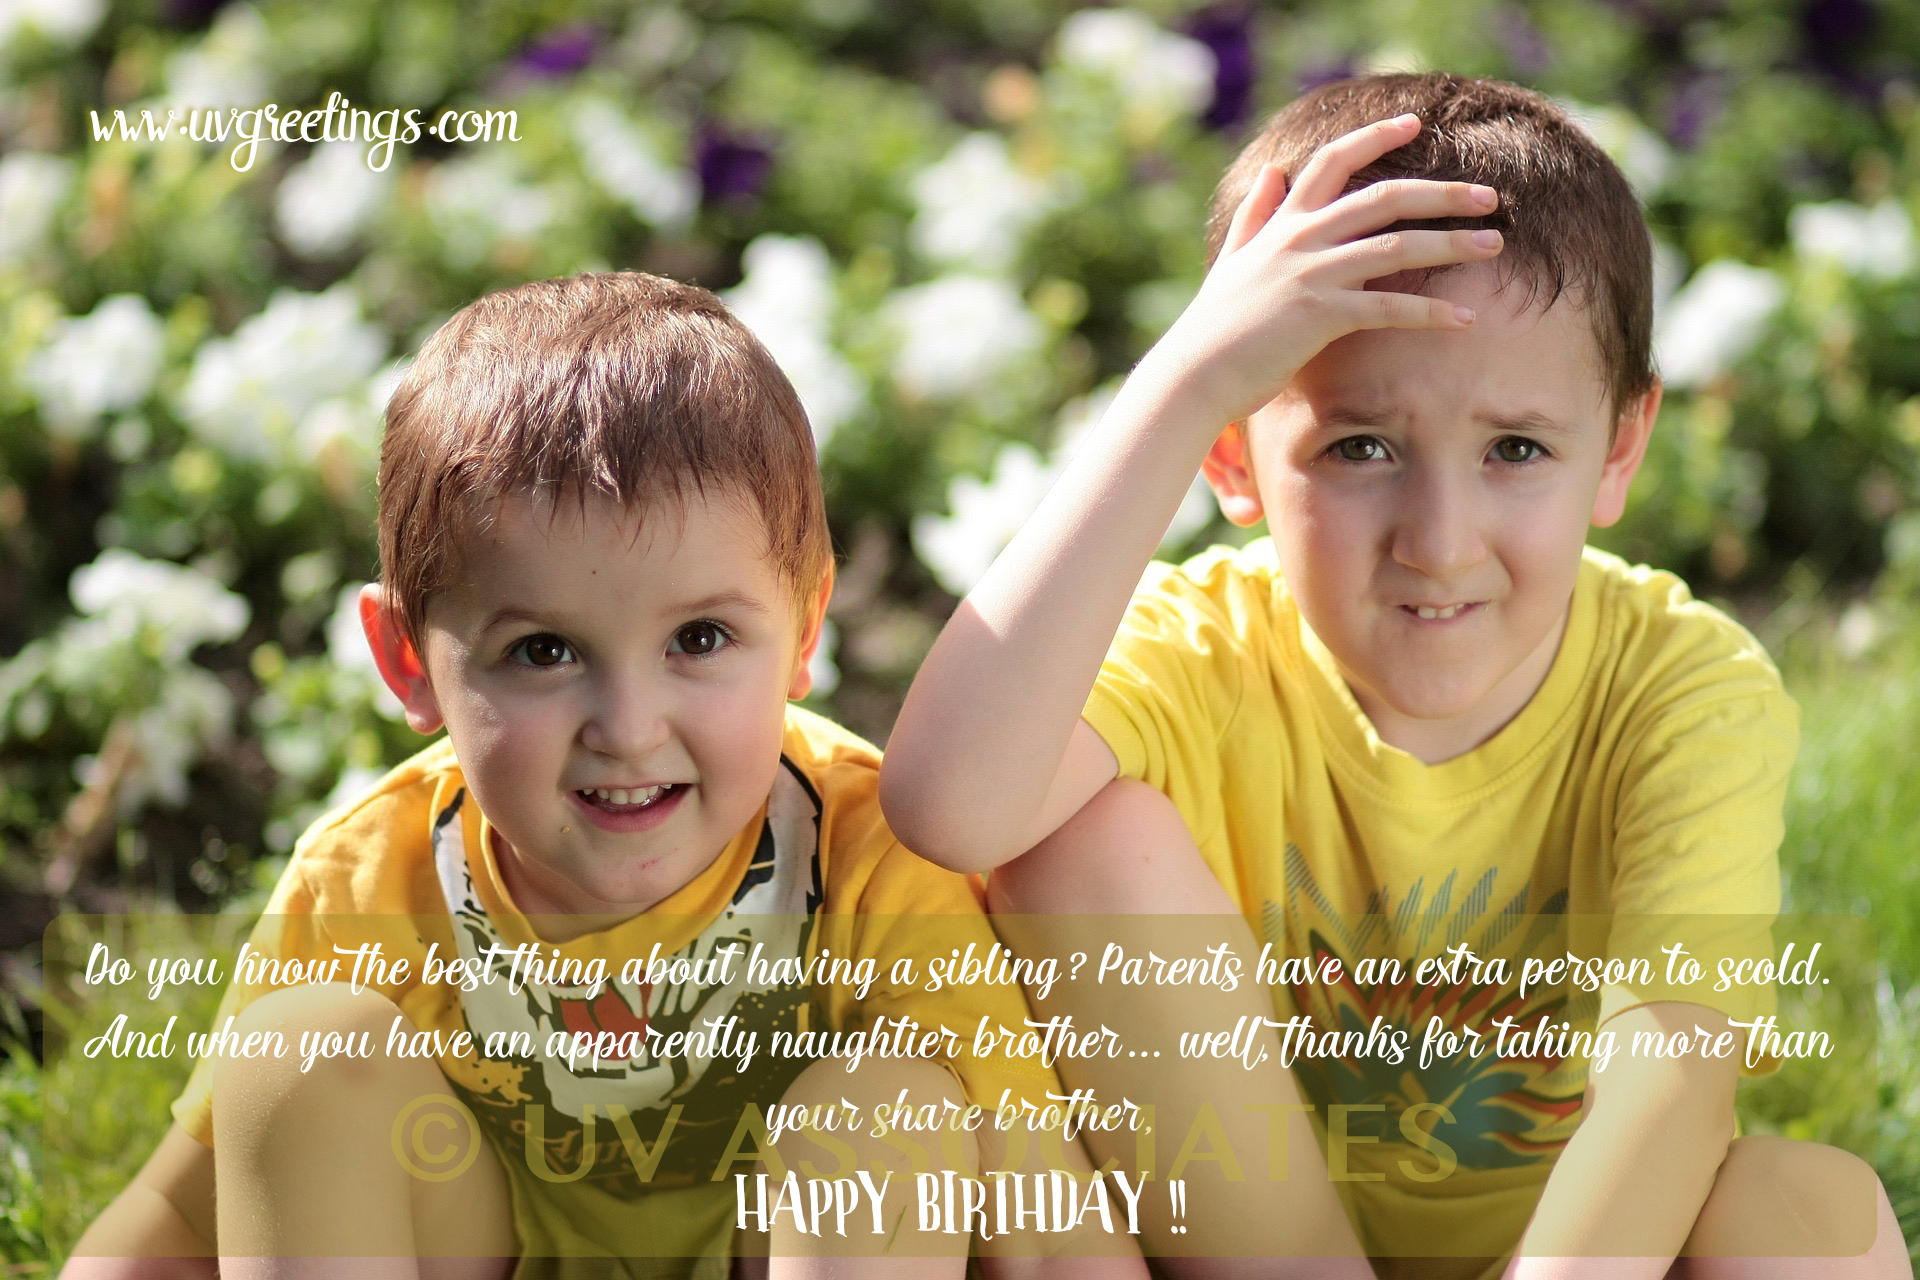 Funny eCard to tease a brother